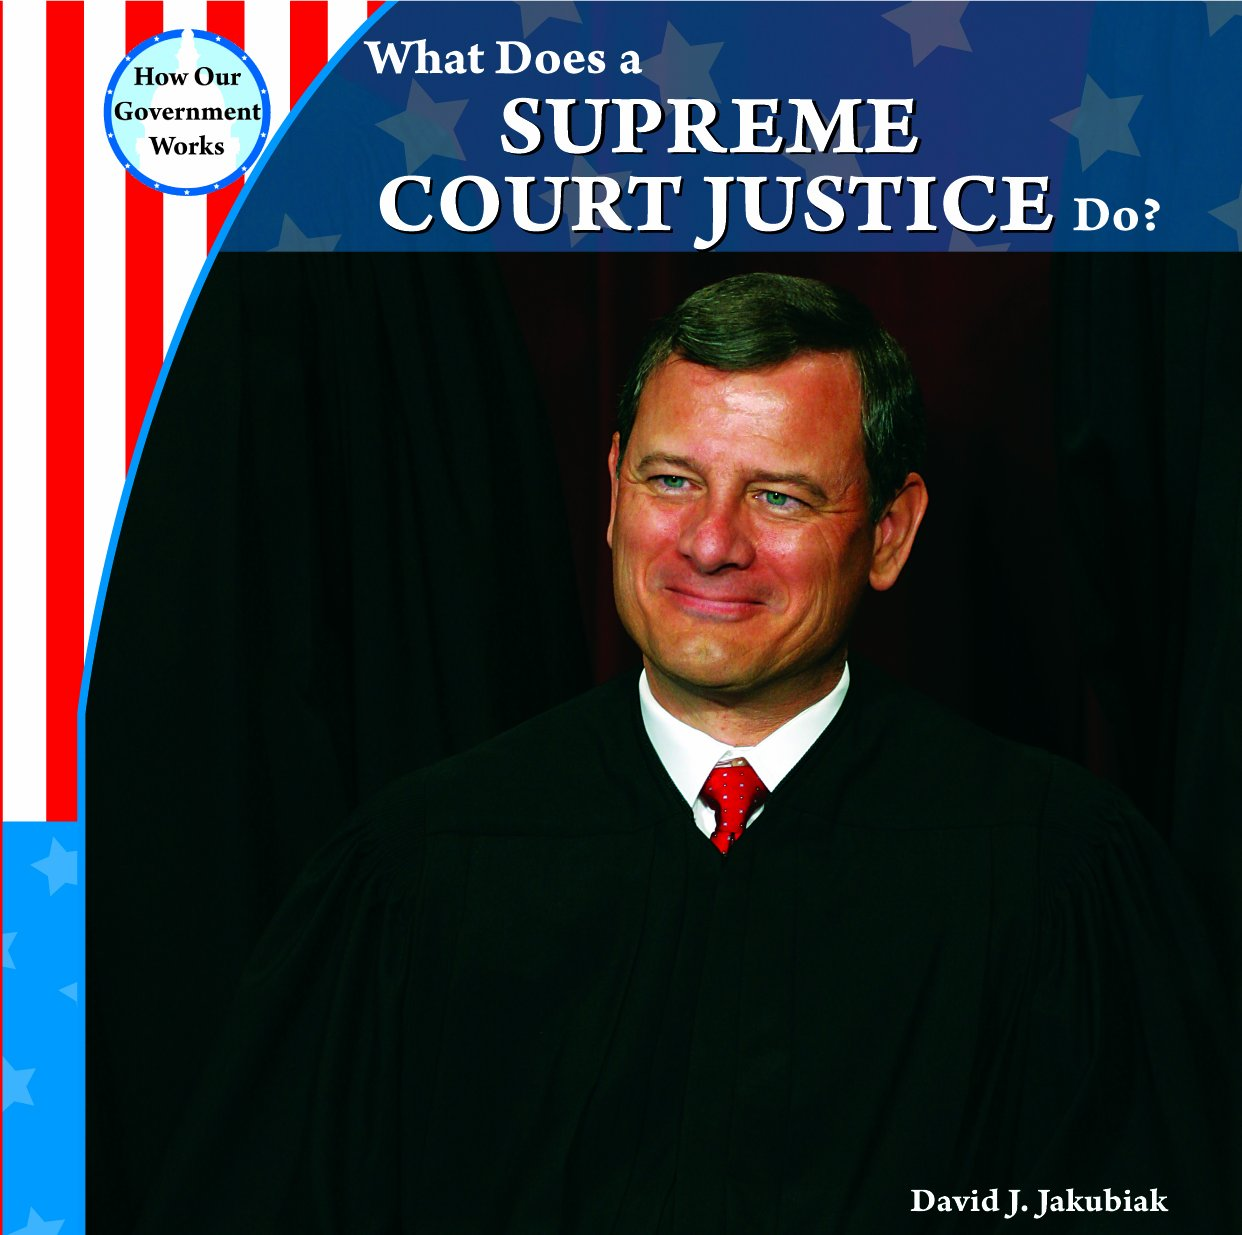 What Does a Supreme Court Justice Do? (How Our Government Works)